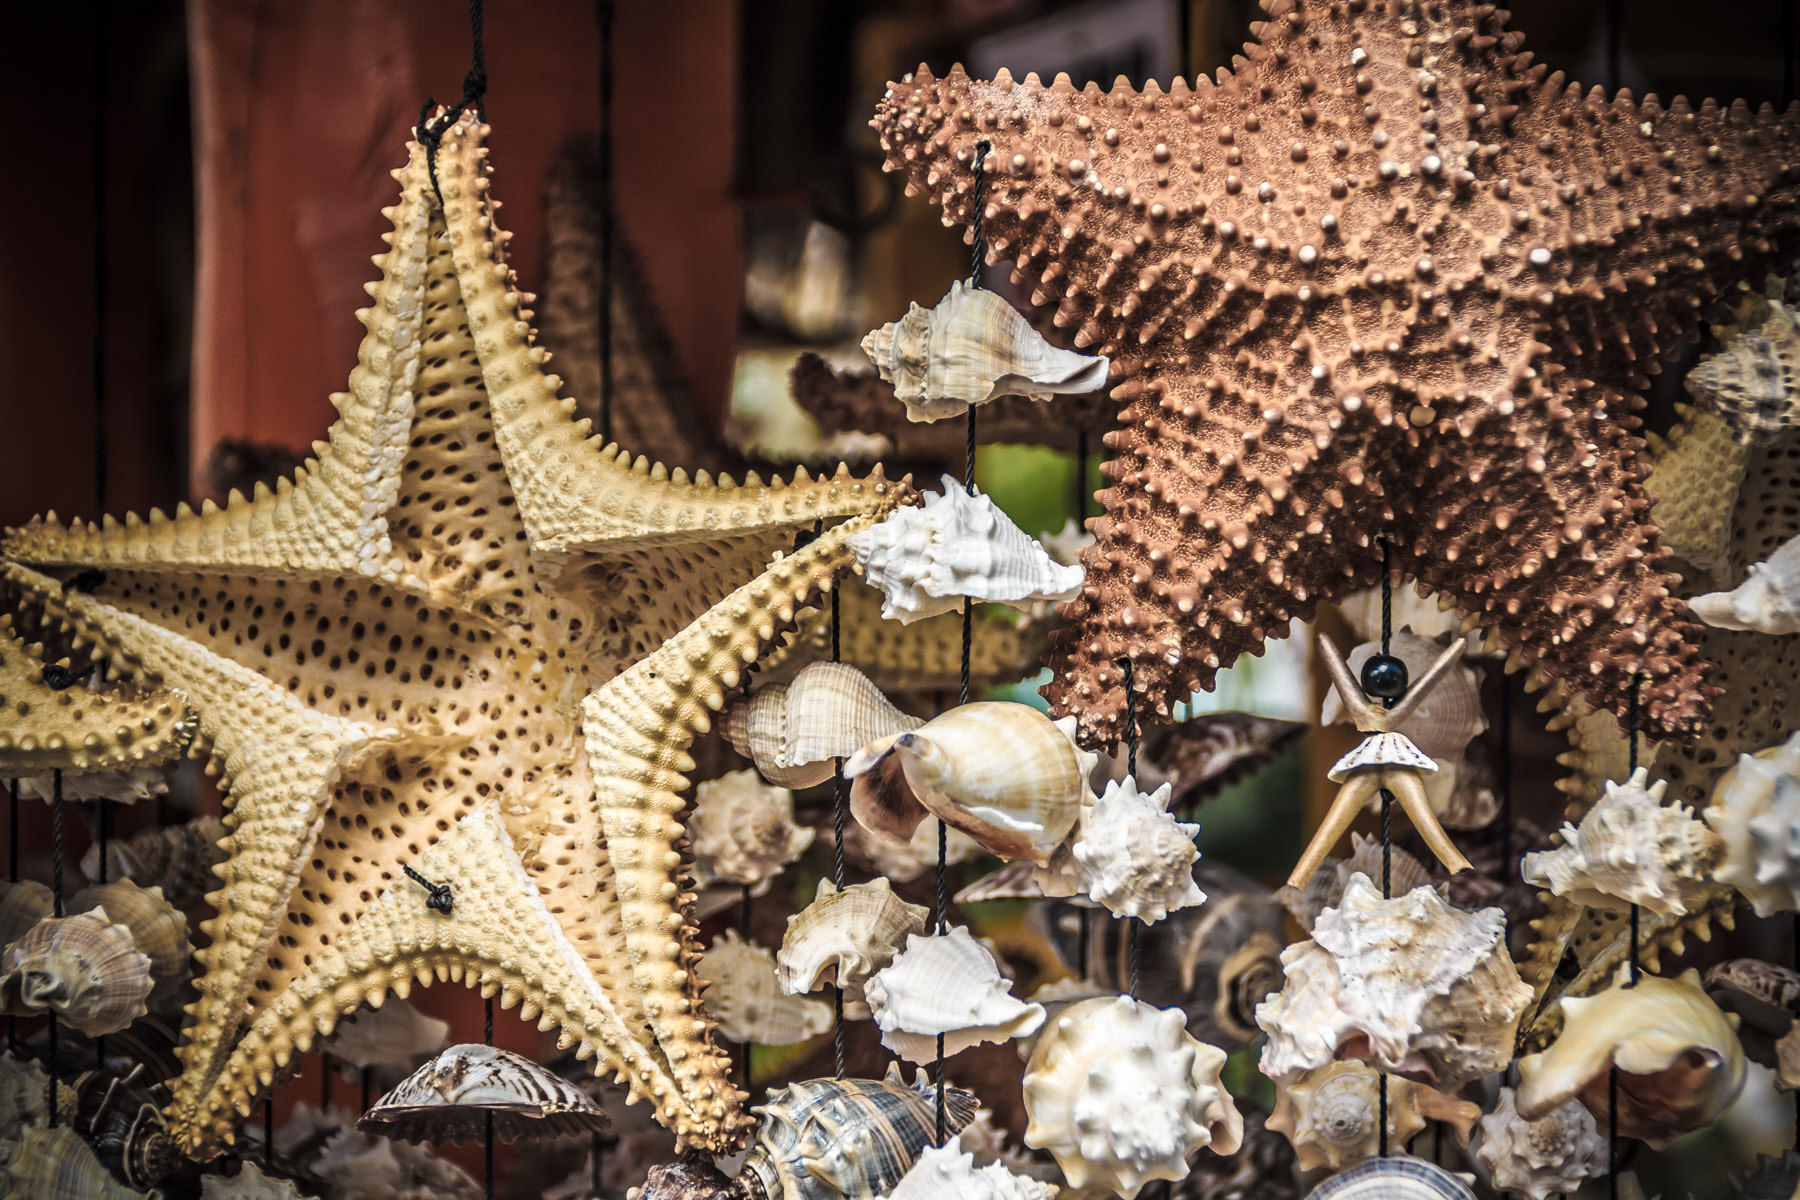 Wind chimes made of dried starfish and seashells, spotted for sale in Cozumel, Mexico.